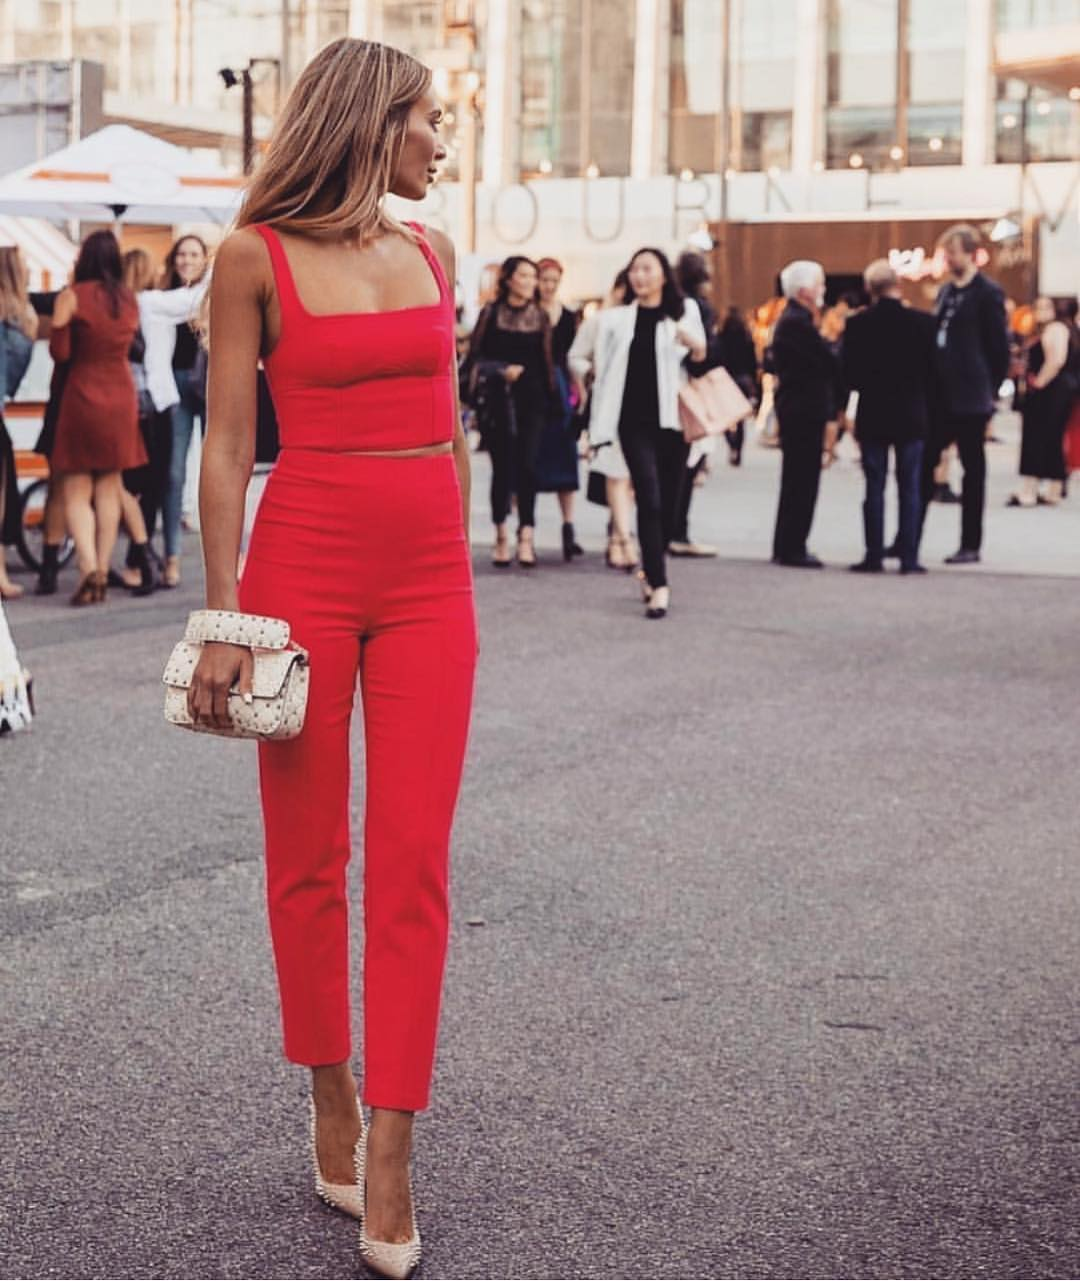 Red Two-Piece Jumpsuit For Summer Street Walks 2020